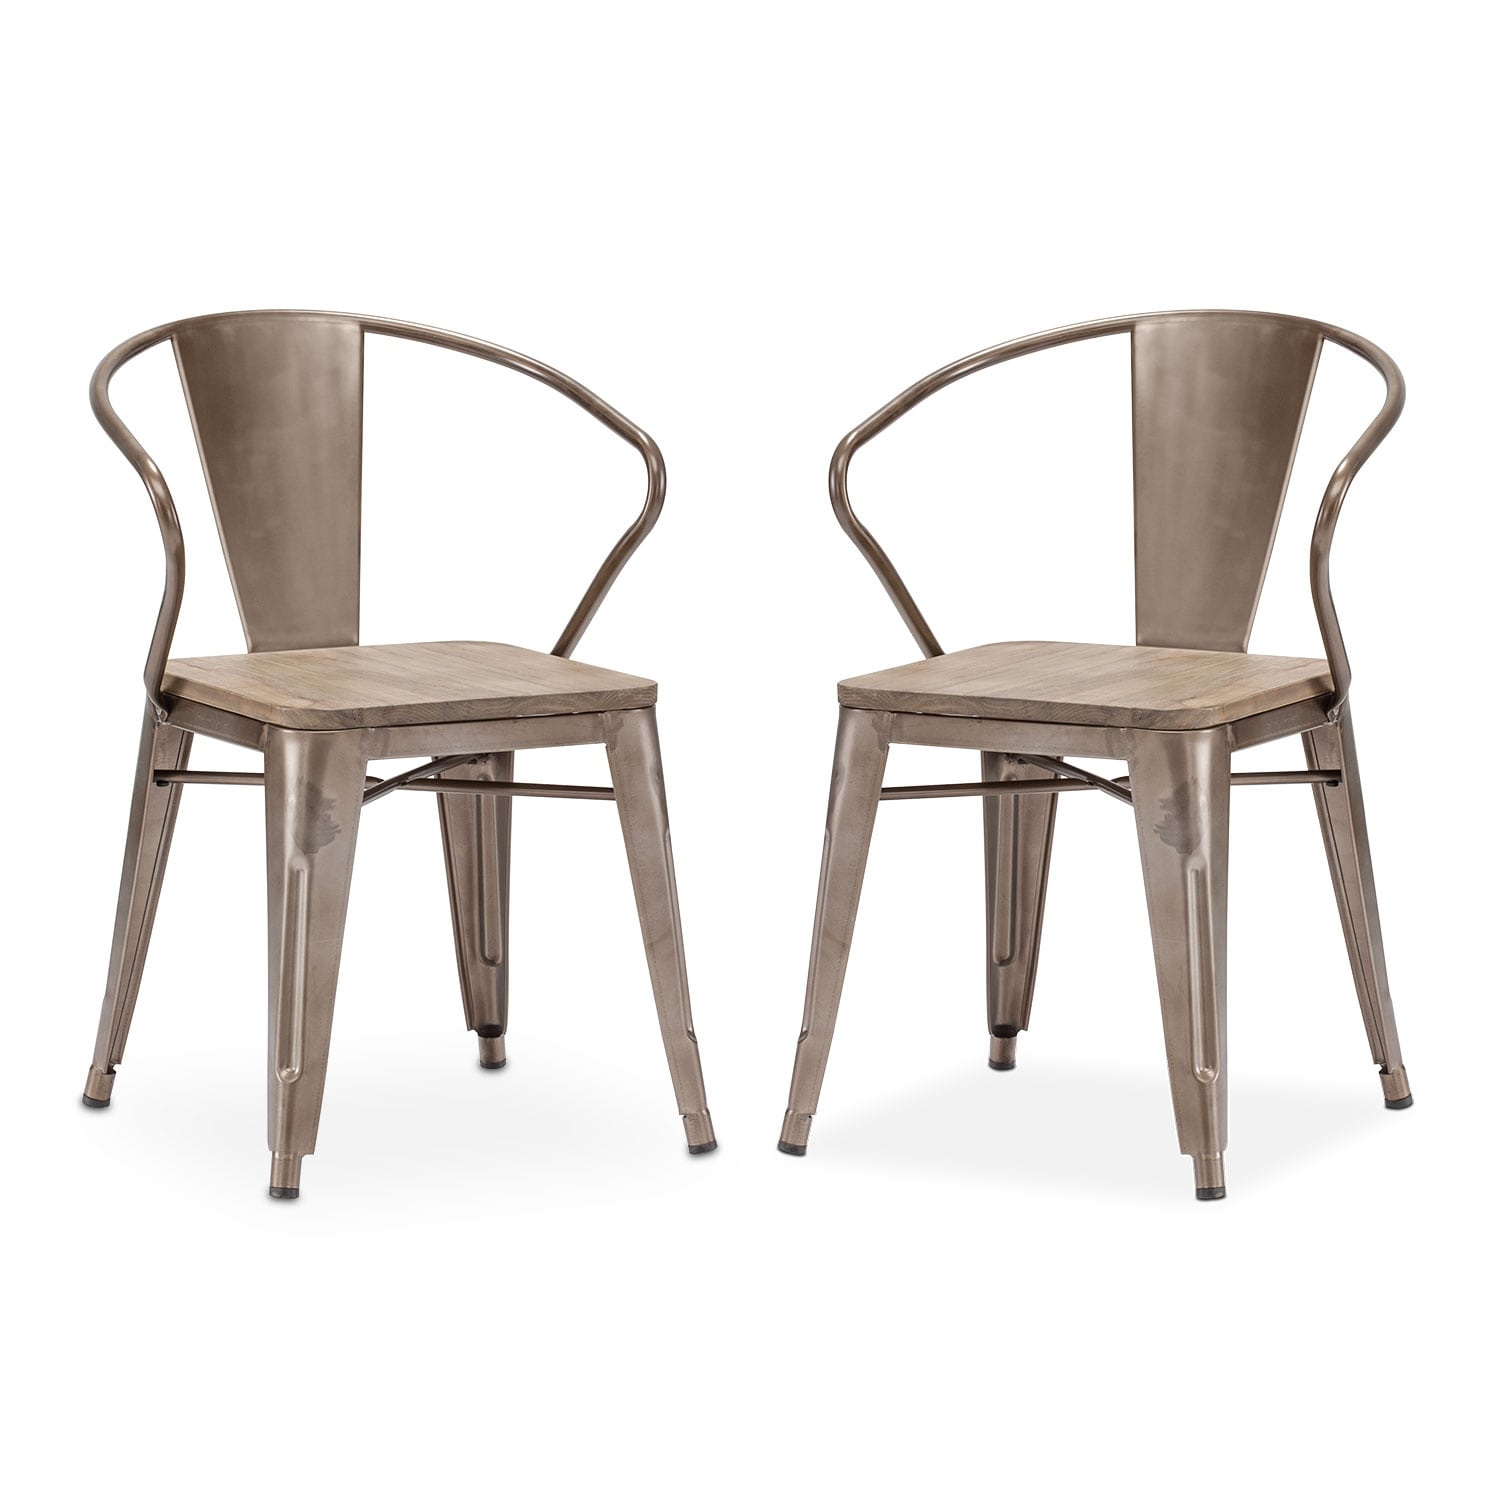 Dining Room Furniture - Rustica 2-Pack Arm Chairs